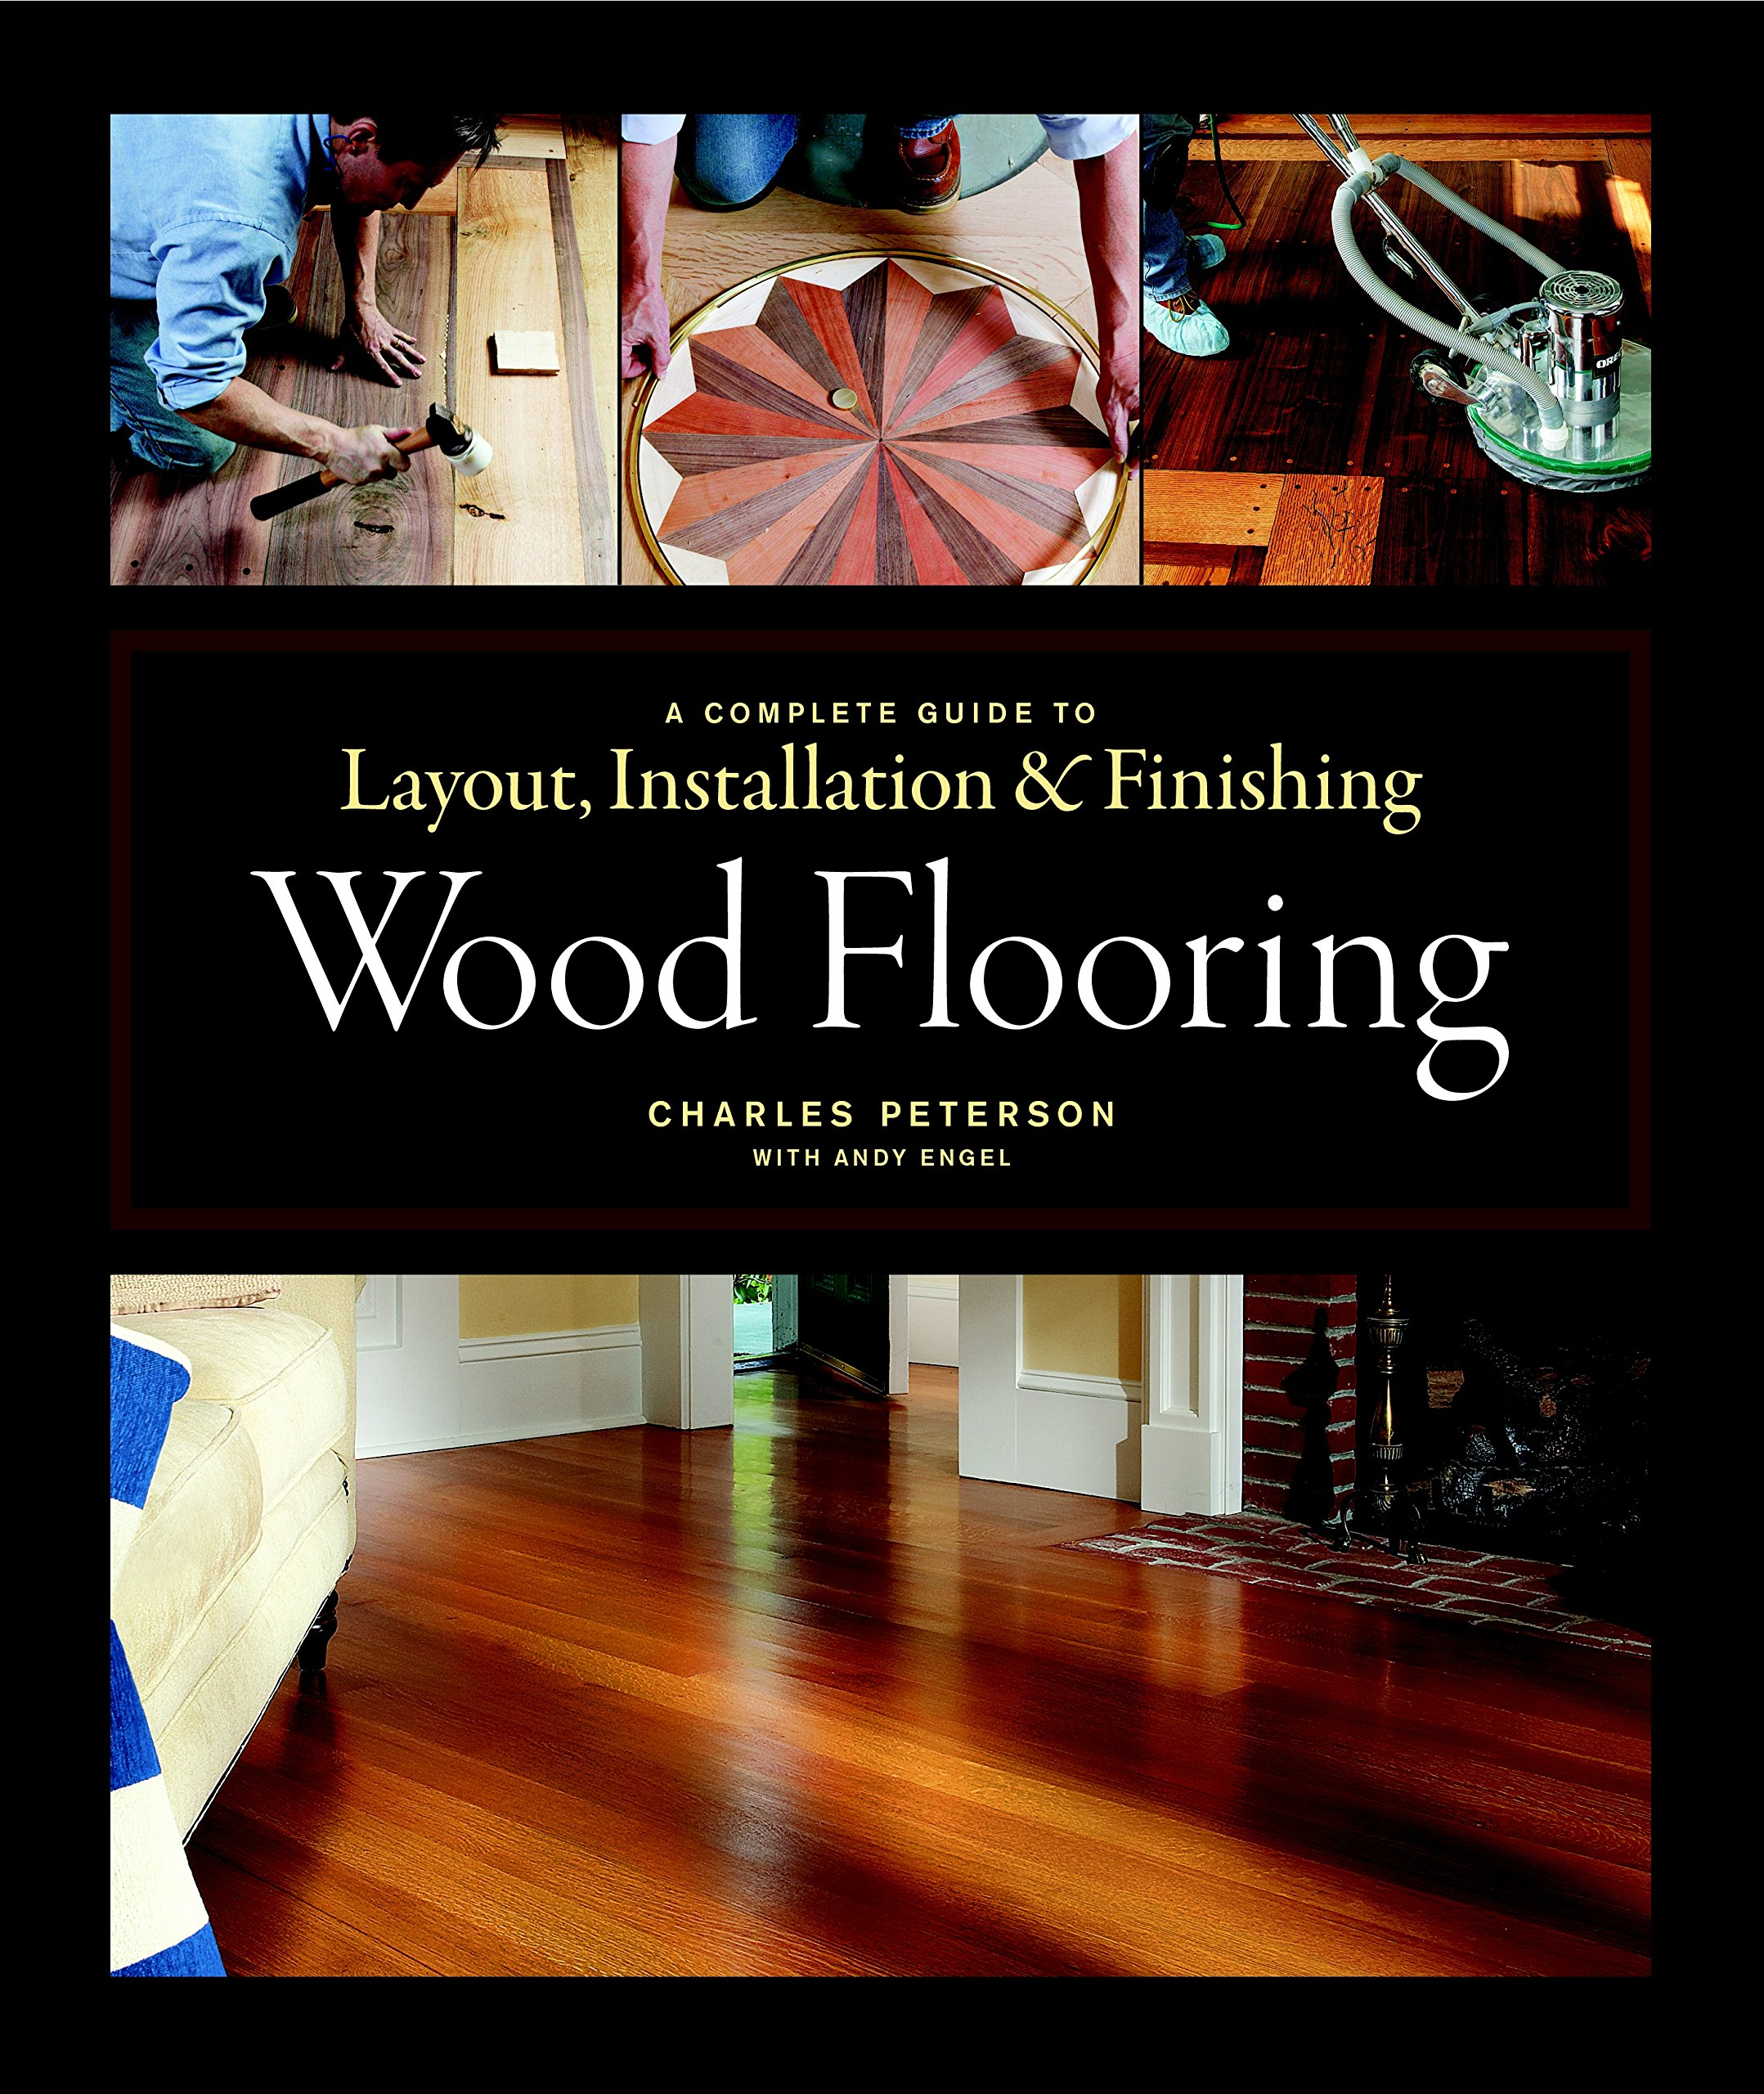 Wood Flooring: A Complete Guide to Layout, Installation & Finishing